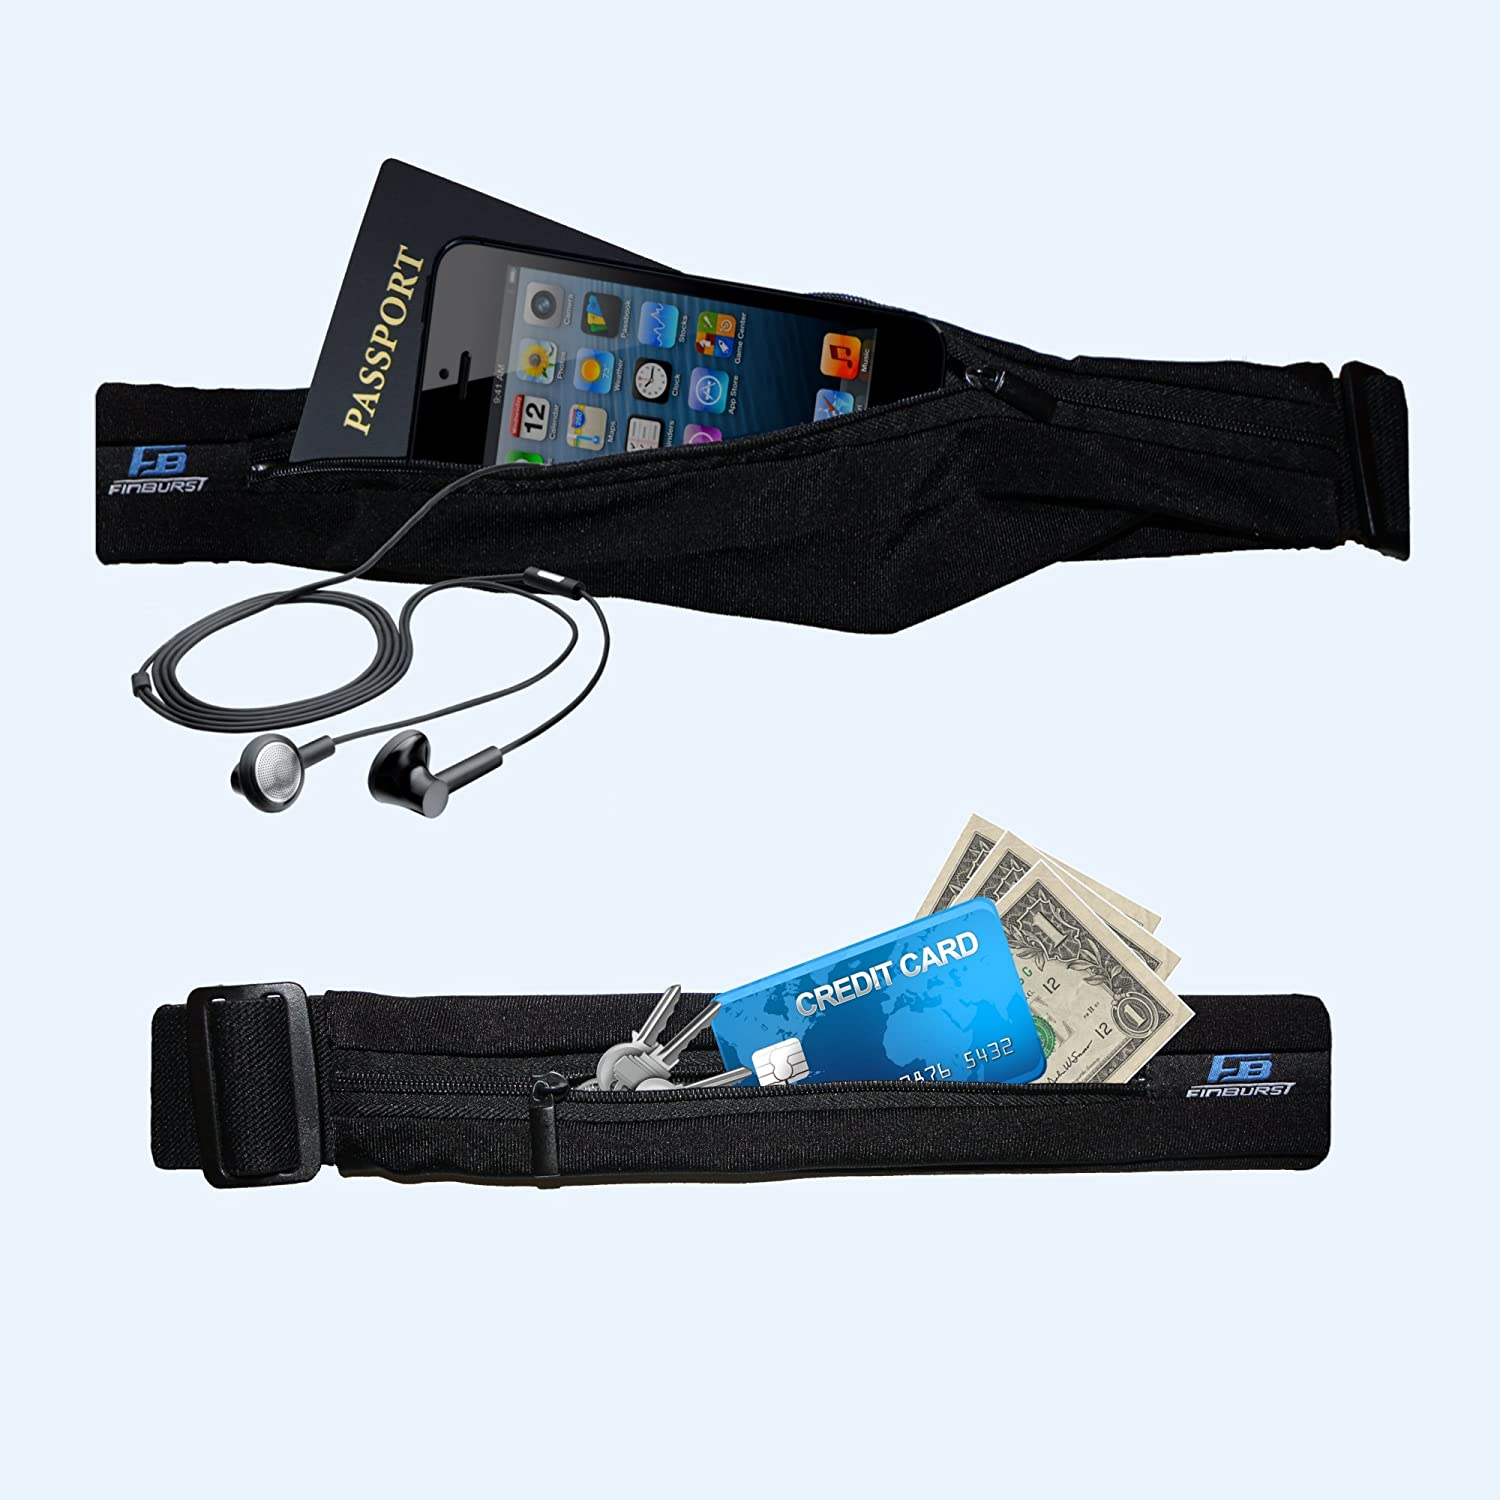 The Best Waist Pack for Athletes Around the World Fits EVERY iPhone /& Cell Phone FinBurst Running Belt